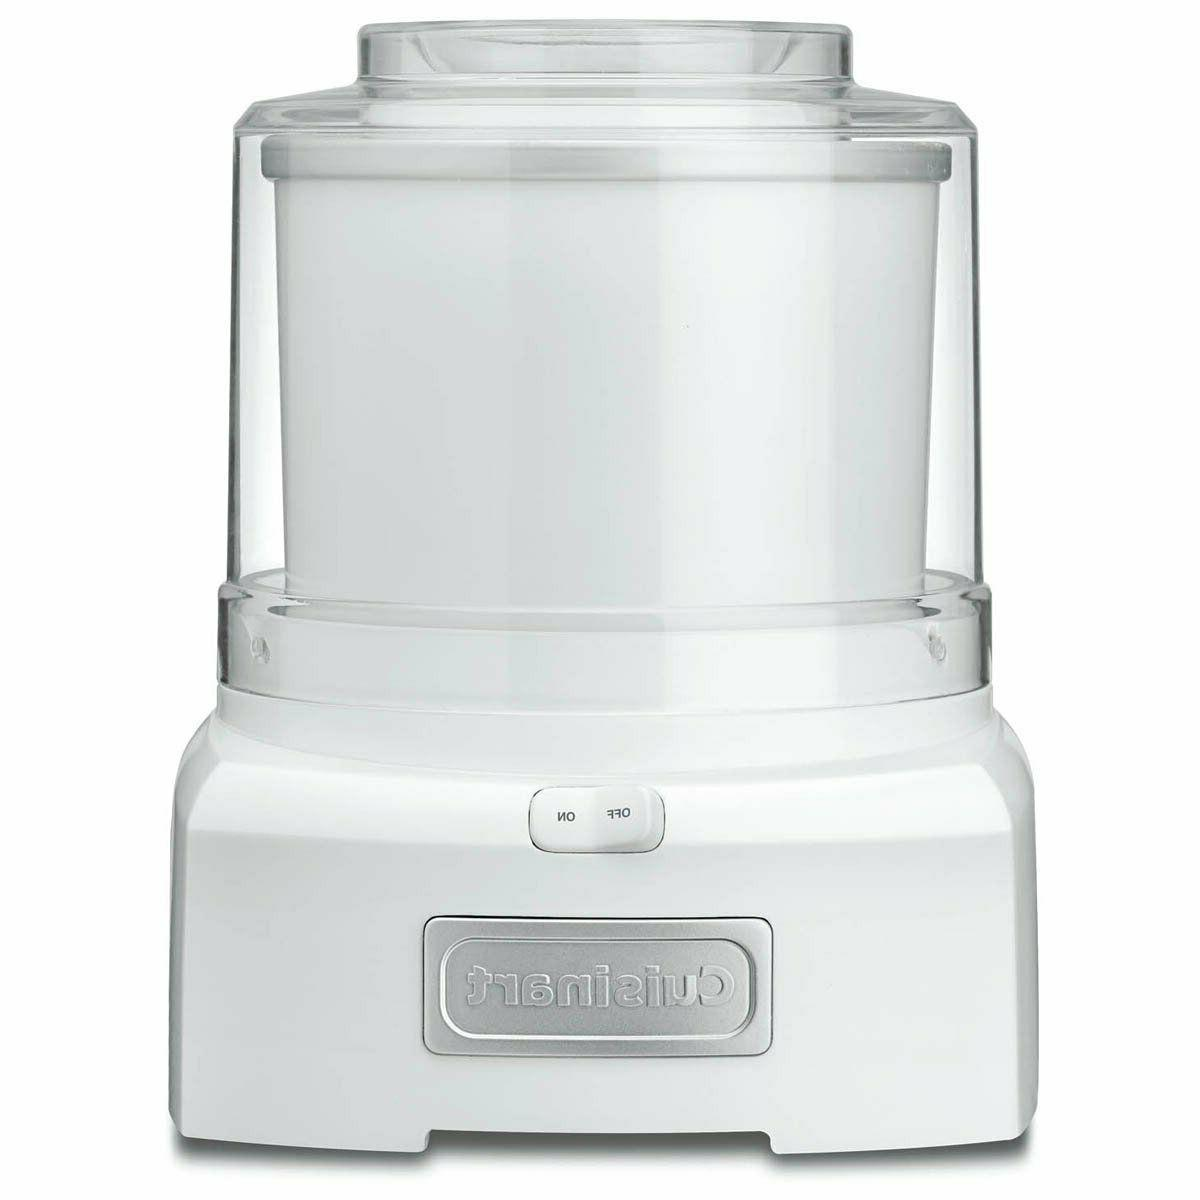 New 1.5 Quart Ice Cream/Yogurt Makers Frozen Yogurt, White